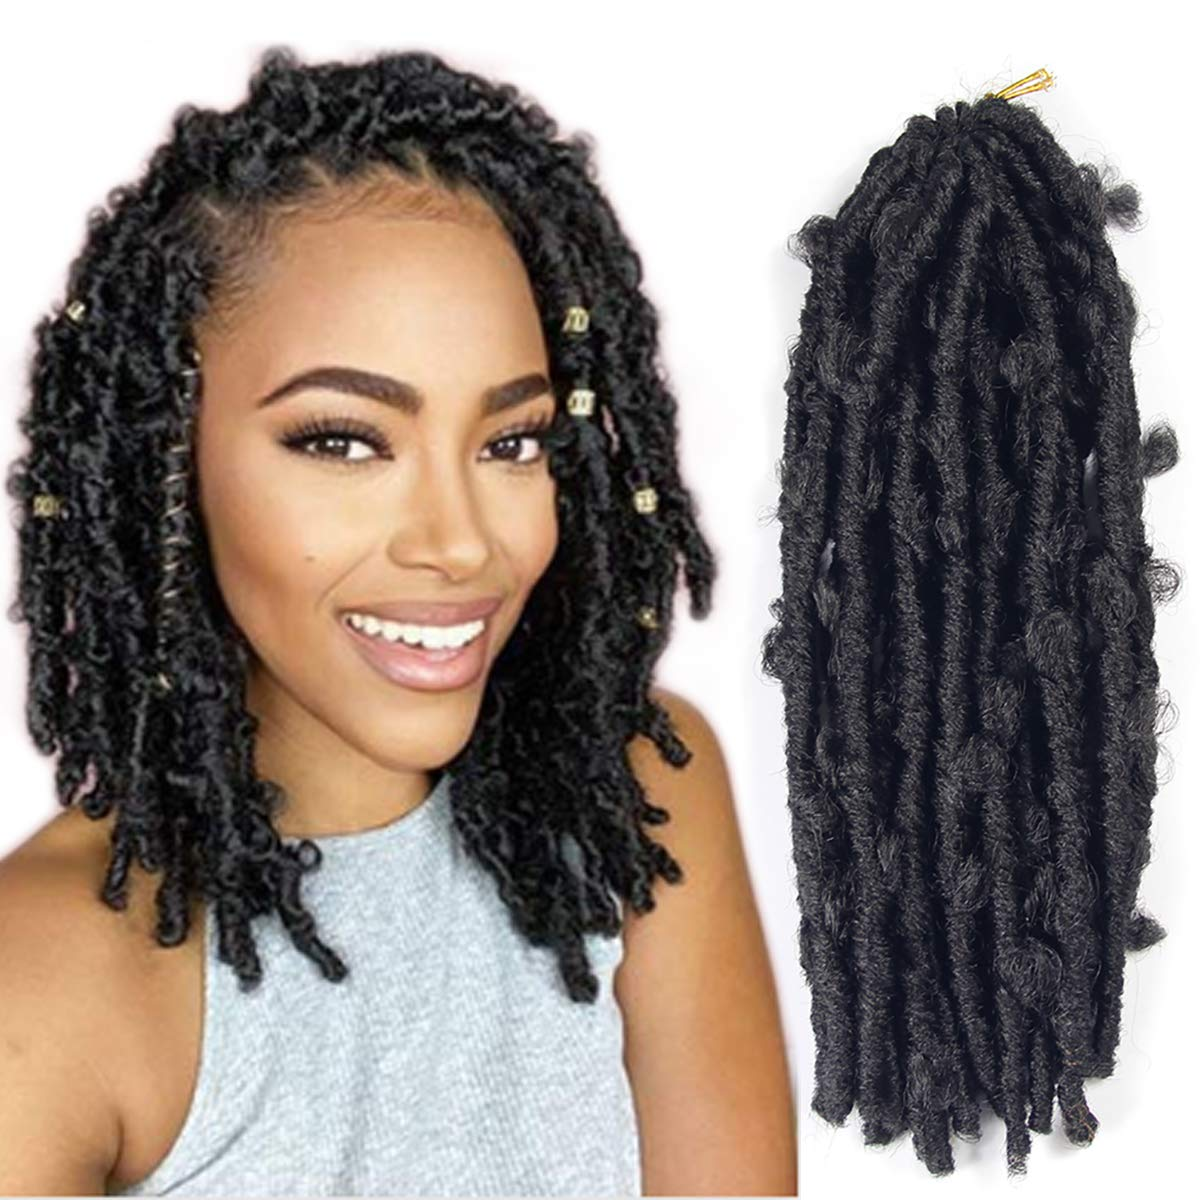 6 Packs Butterfly Locs Crochet Hair Looped Pre Inch Sale 12 Distresse Mesa Mall